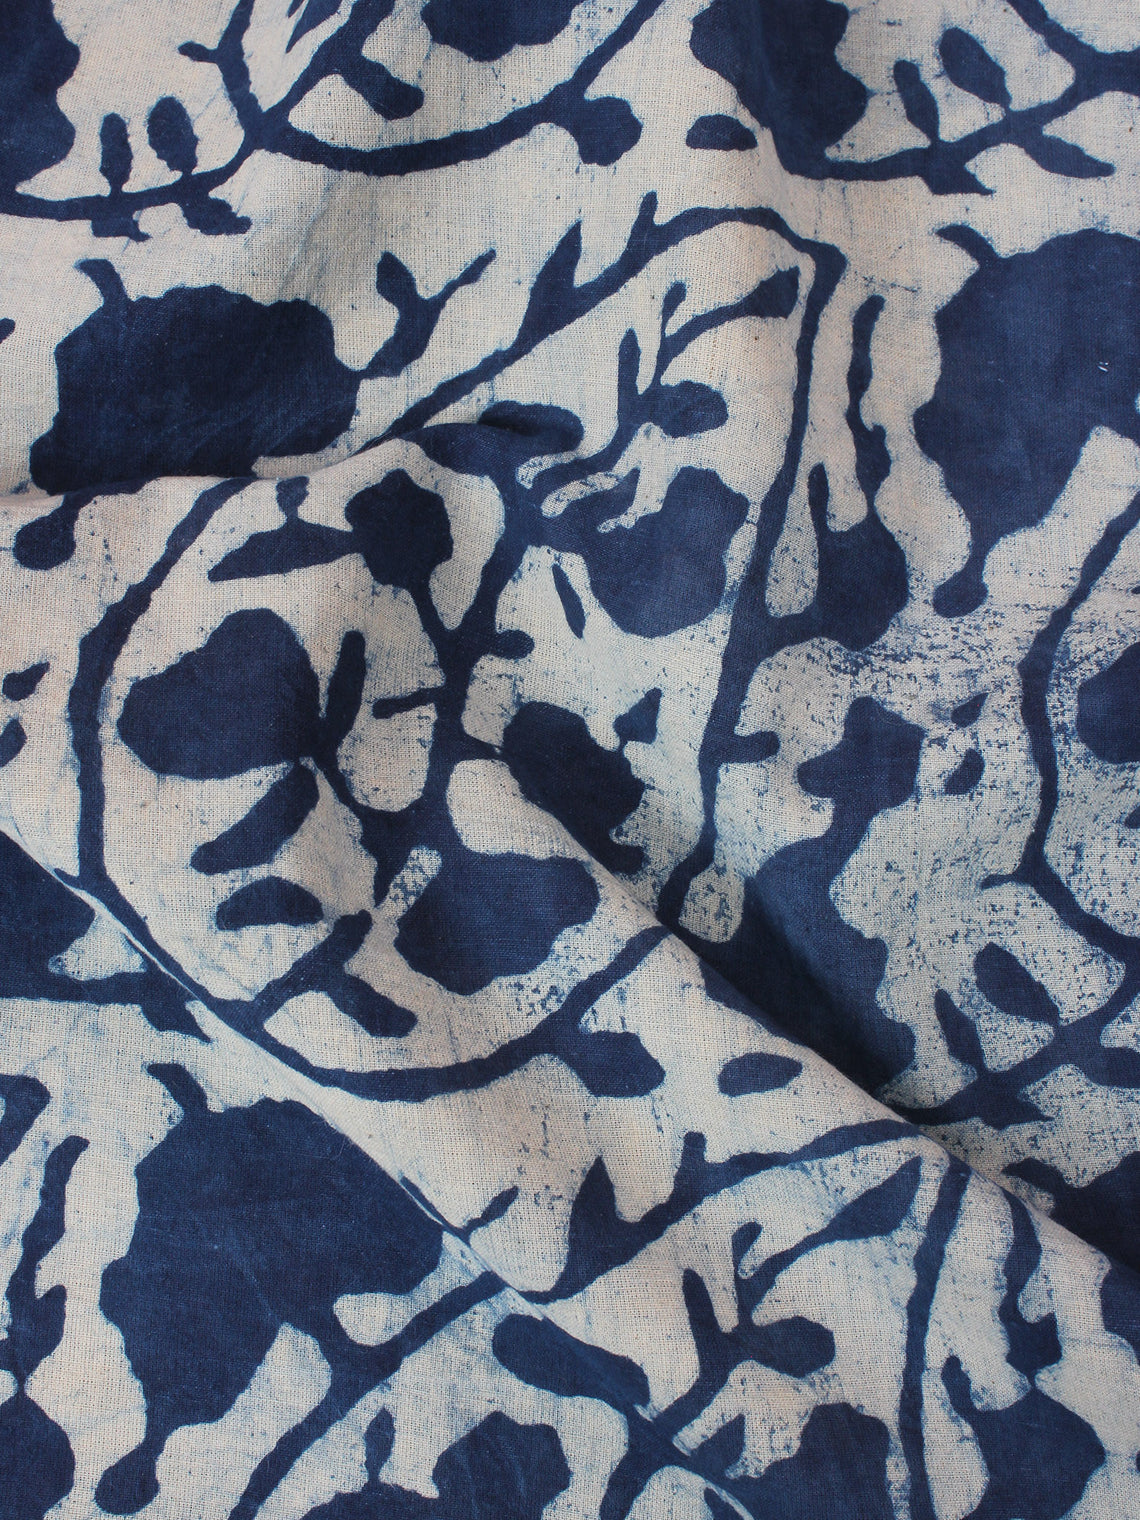 White Indigo Hand Block Printed Cotton Fabric Per Meter - F0916351